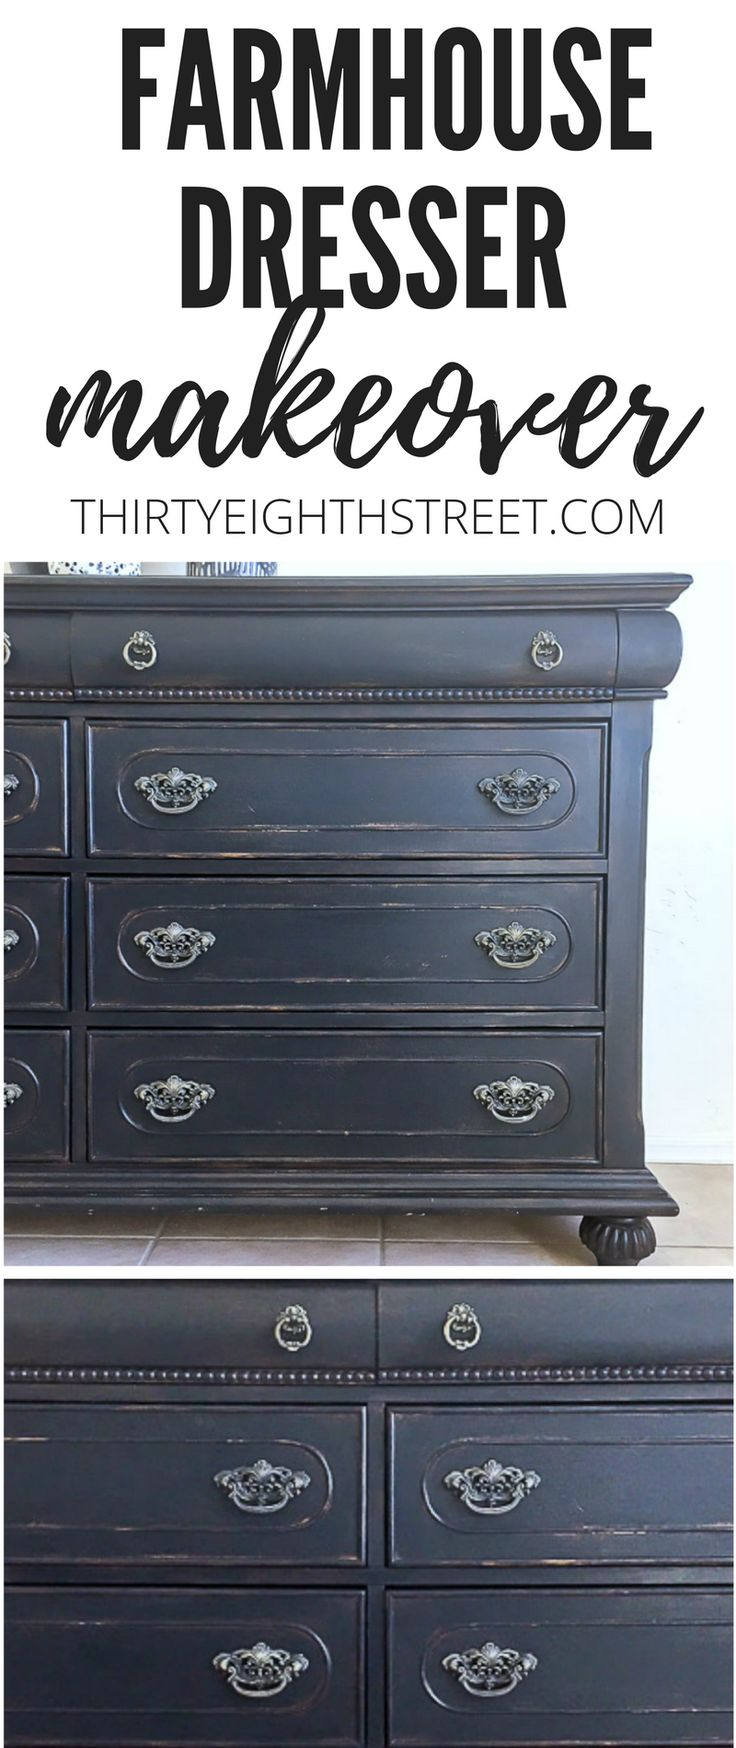 How To Paint and Distress Old Furniture. Painting Furniture To Create Farmhouse Style and Decor. Black Painted Dresser. Painting Furniture Ideas. Chalk Painted Furniture Ideas. Before and After Furniture. How To Distress Furniture Without ANY Sandpaper. #farmhouse #painteddresser #dressermakeover #blackfurniture #chalkpainted